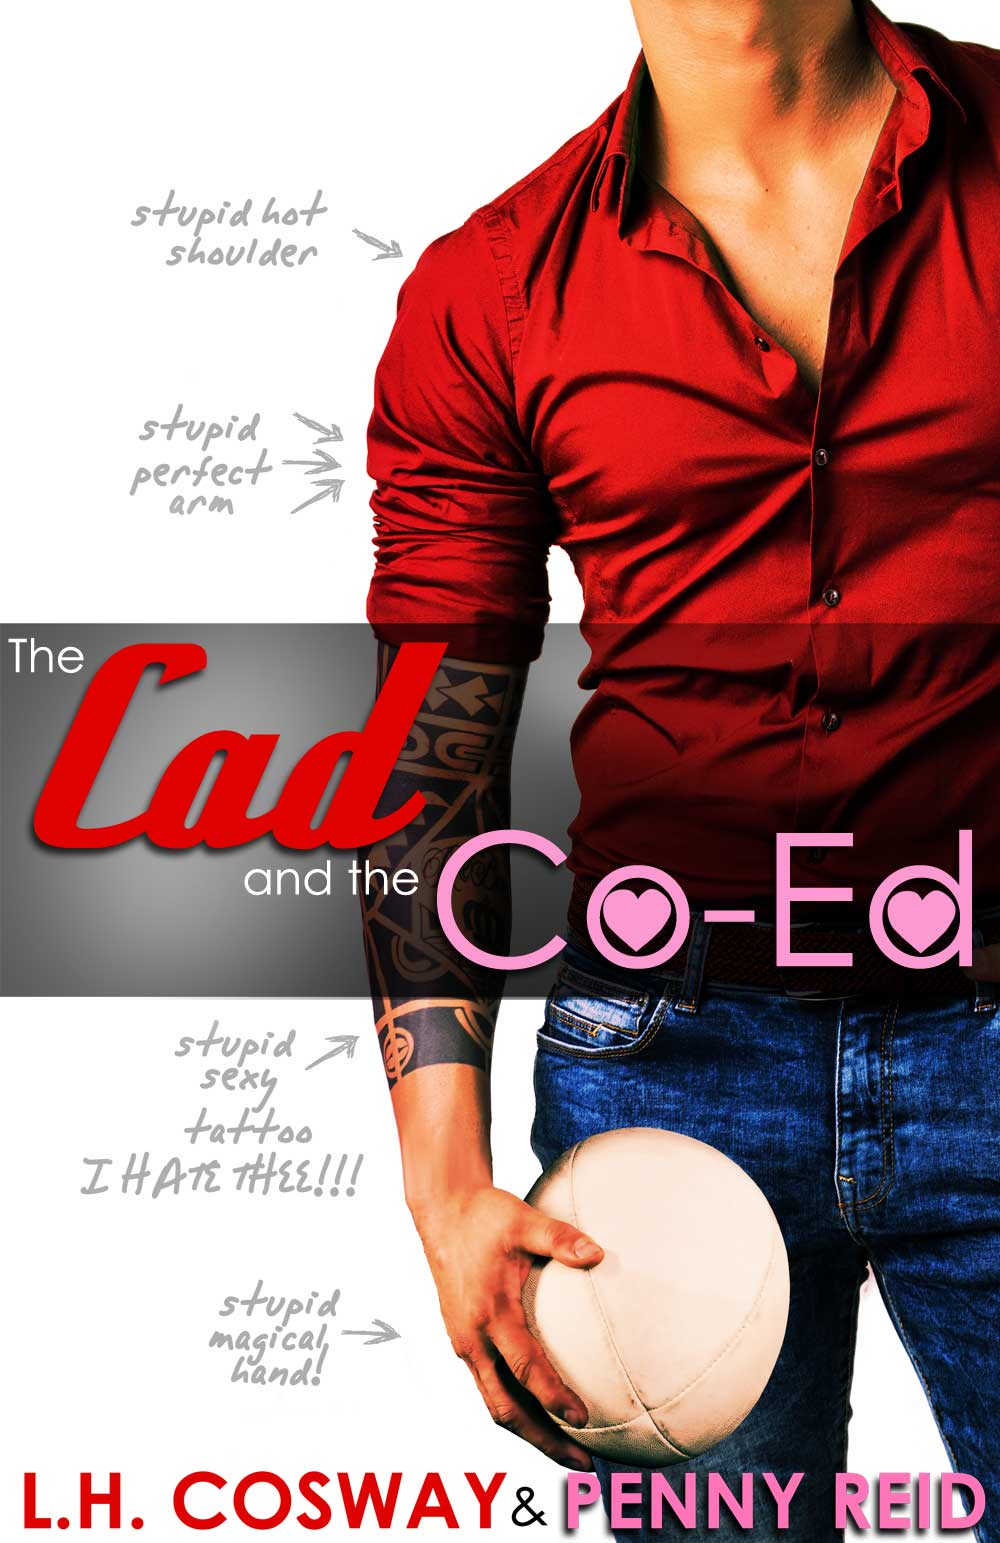 Have you seen the cover for The Cad & the Co-Ed?